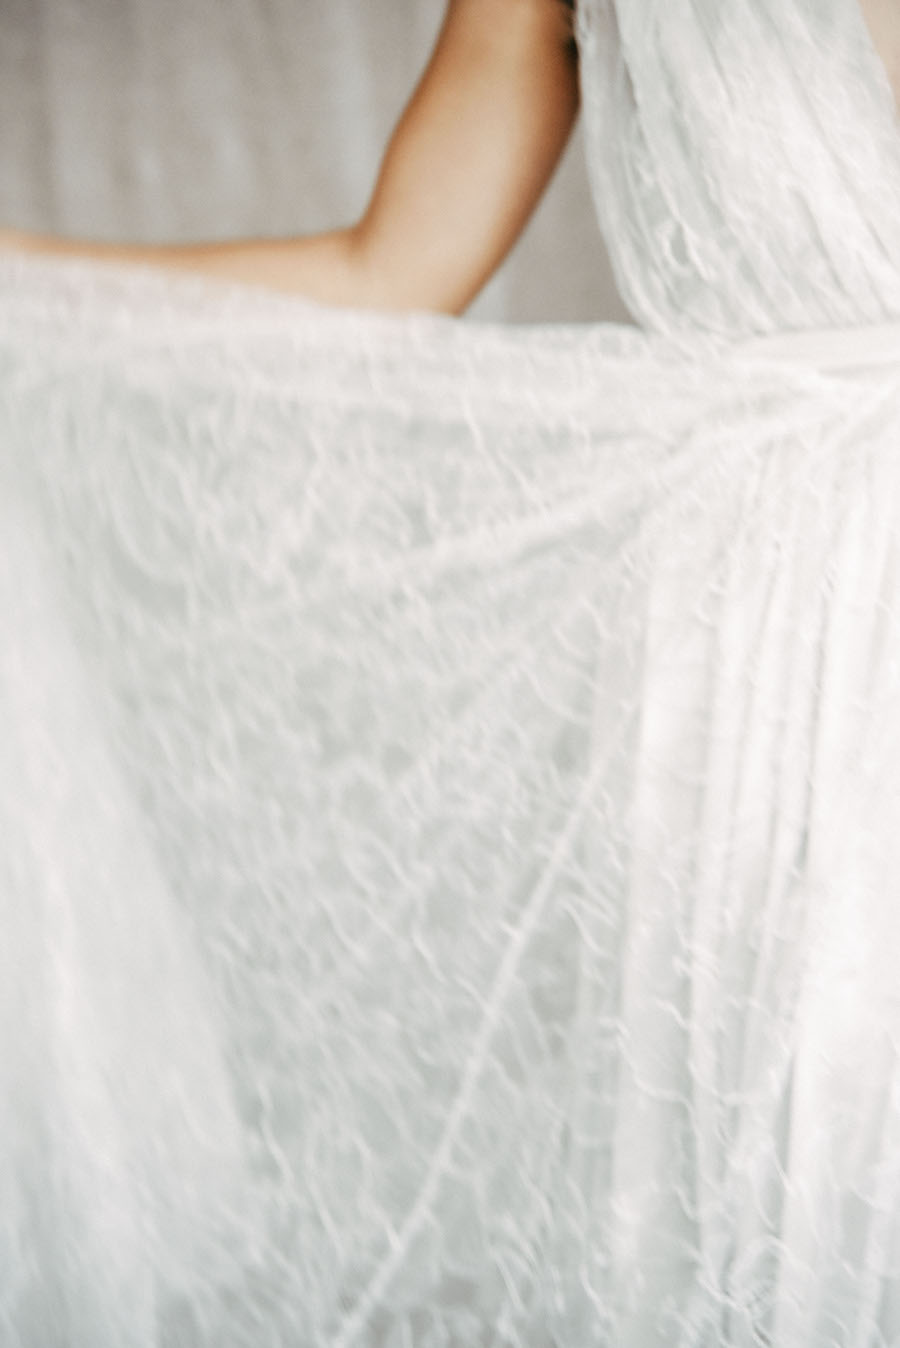 The lace on this Alexandra Grecco gown is breathtaking, now featured on Cottage Hill